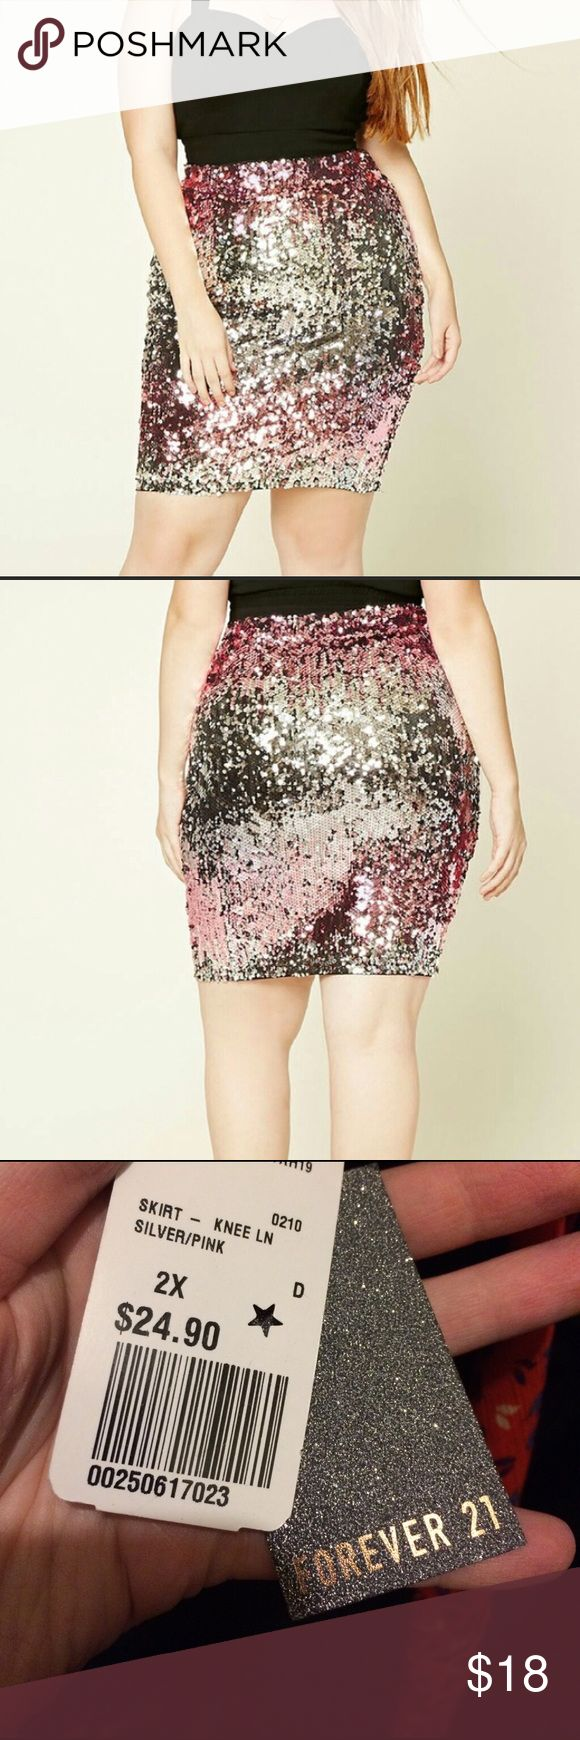 HPNWT Forever 21 Plus Size Sequin Skirt Gorgeous, eye-catching skirt. Brand new, with tags! Forever 21 Skirts